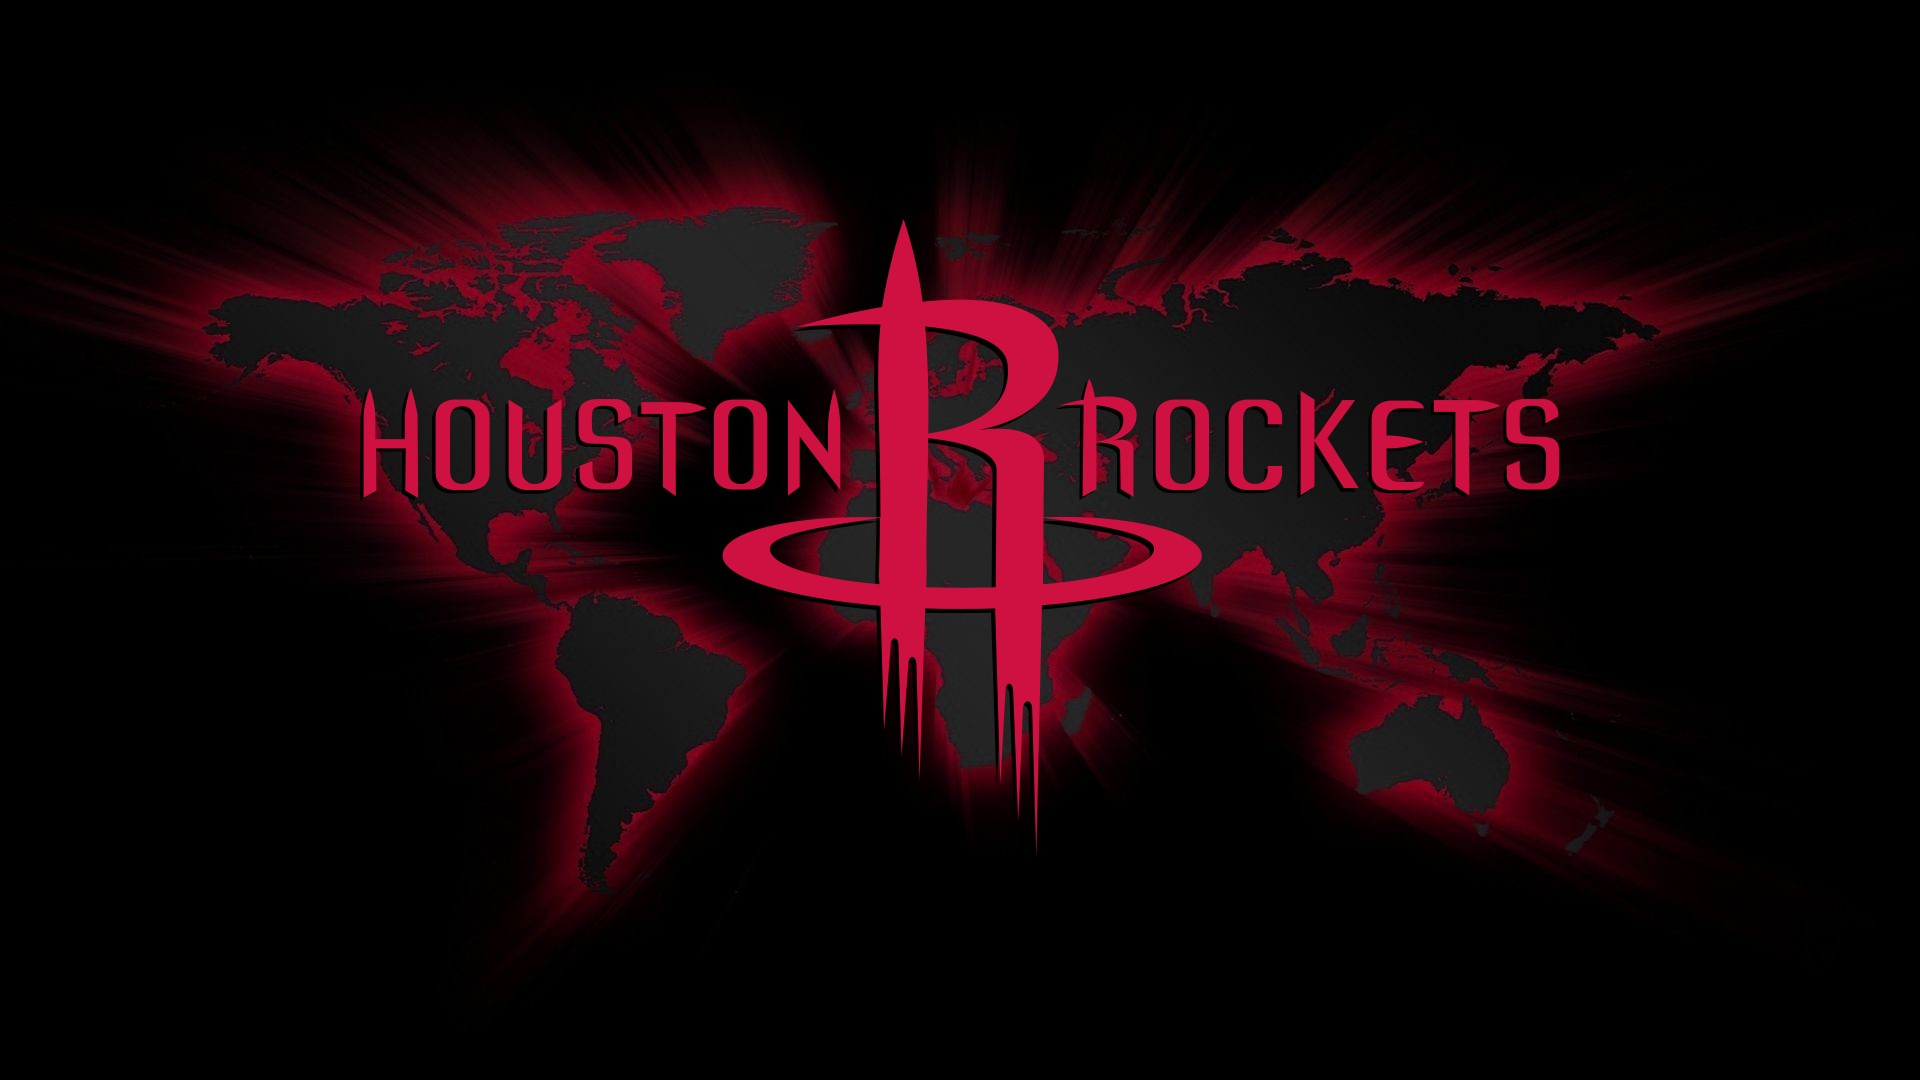 Hd Backgrounds Houston Rockets With Image Dimensions - Rockets Logo Wallpaper 2019 , HD Wallpaper & Backgrounds